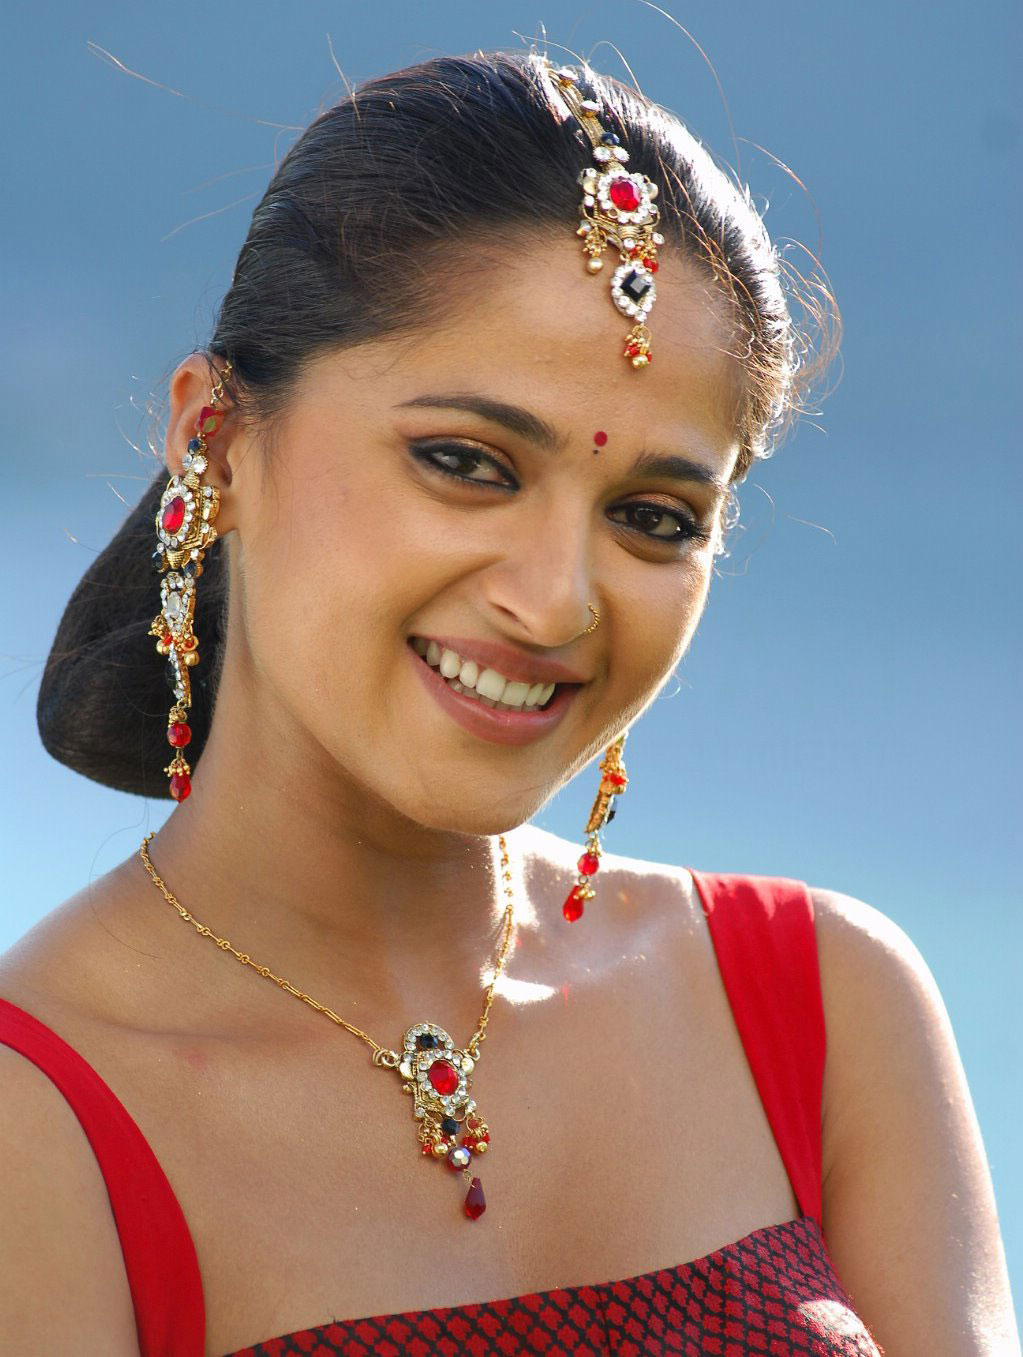 Tamil actress anushka shetty hot hd wallpapers actress models hot pictures photos gallery - Tamil heroines hd wallpapers ...